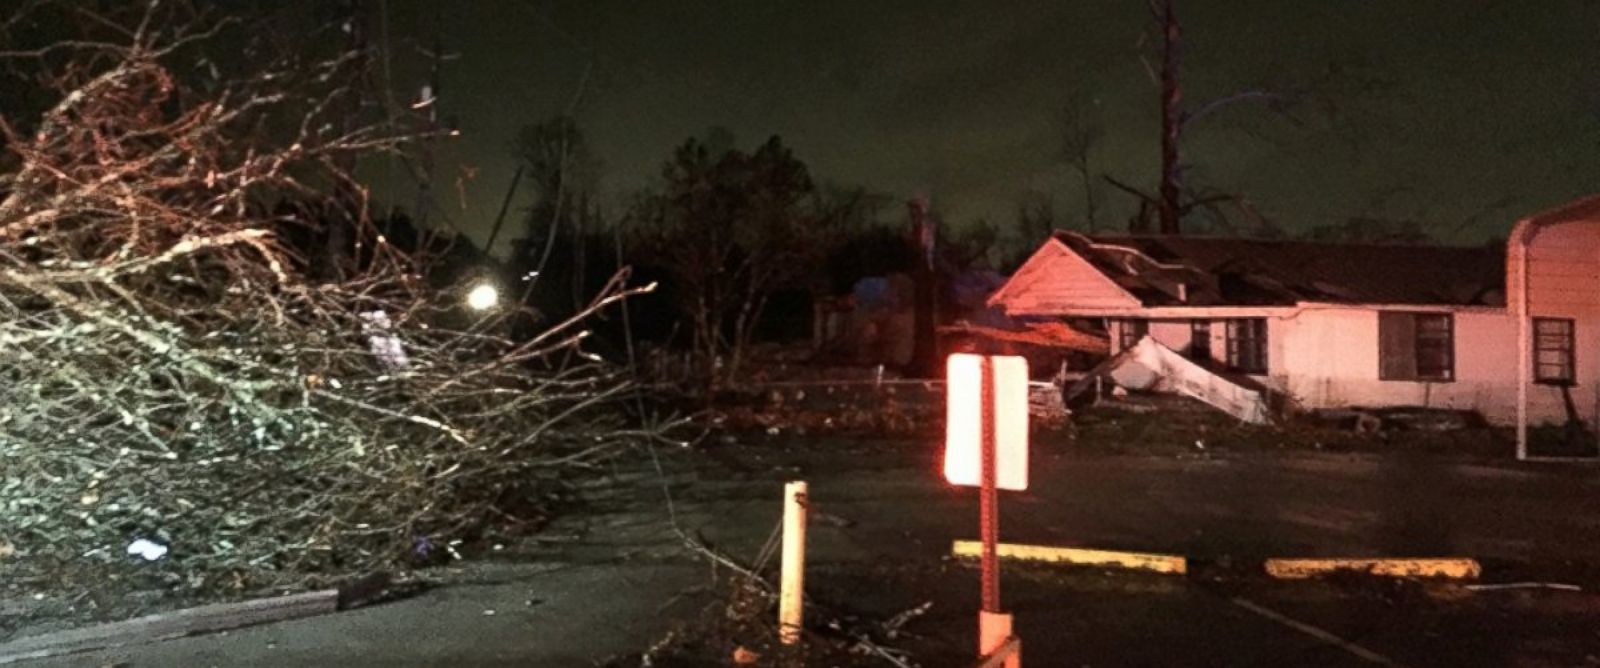 PHOTO: A photo from the Birmingham Fire and Rescue Service Department posted on December 25, 2015, showing damage that occurred in Birmingham, Alabama following a storm.